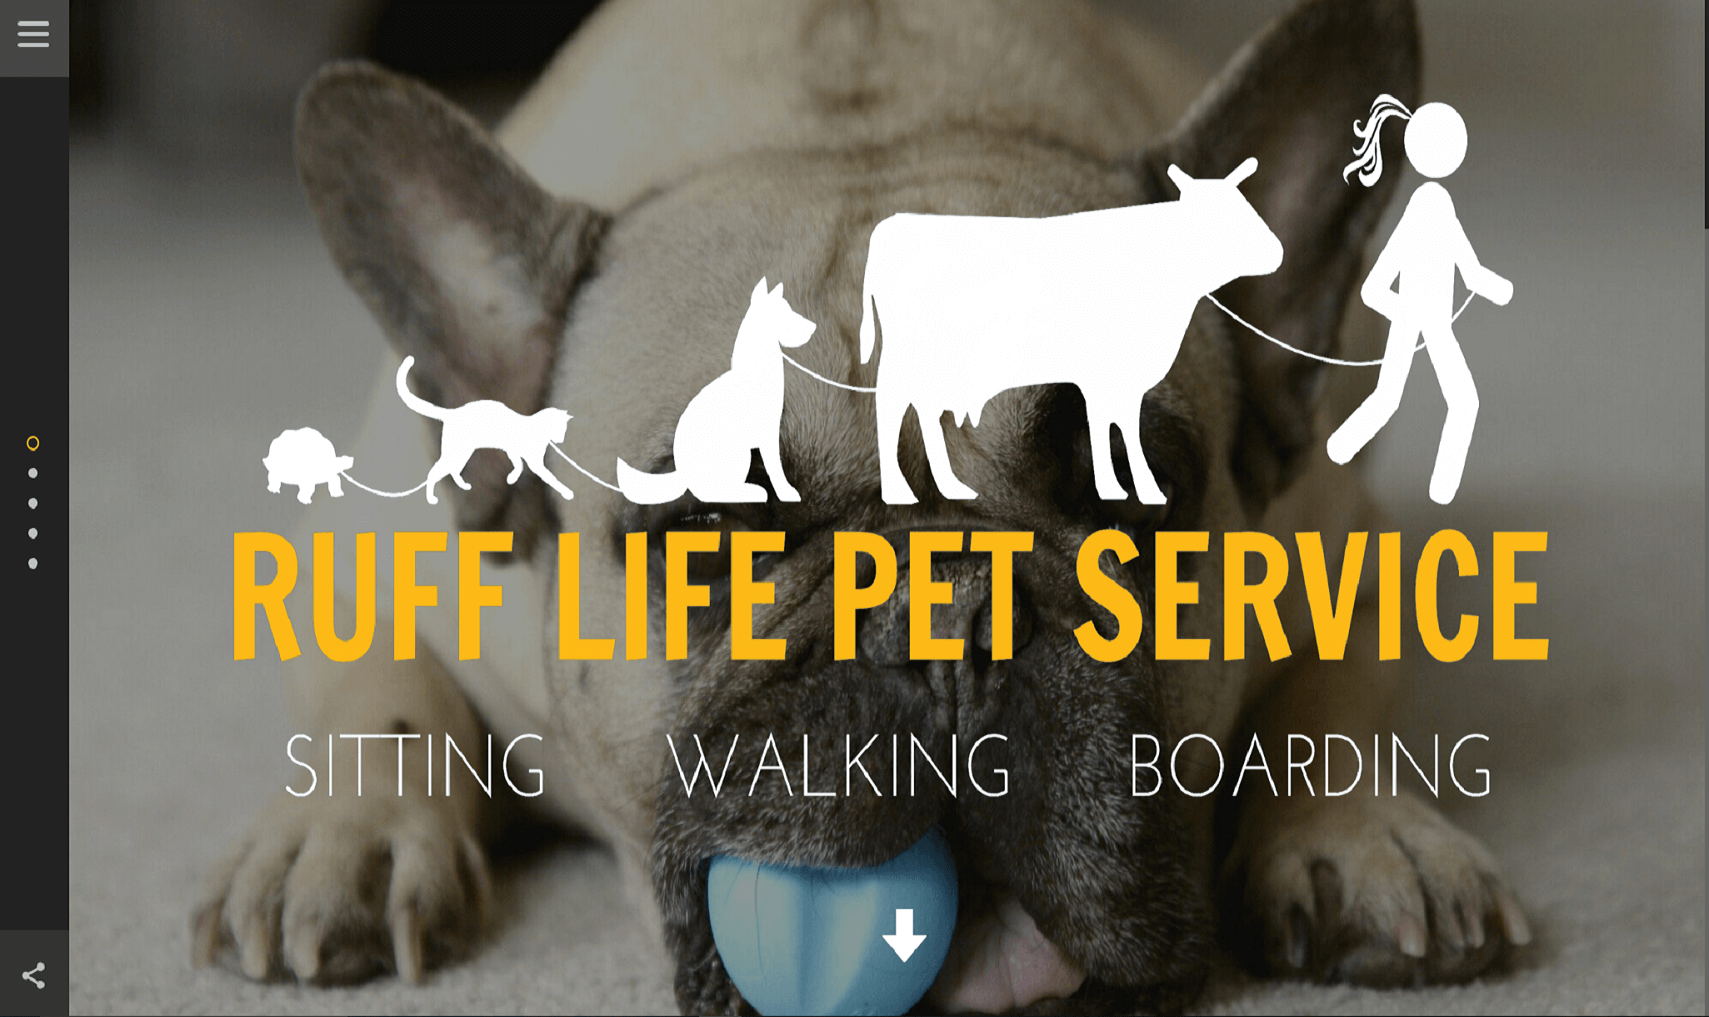 website design for dog walking pet services